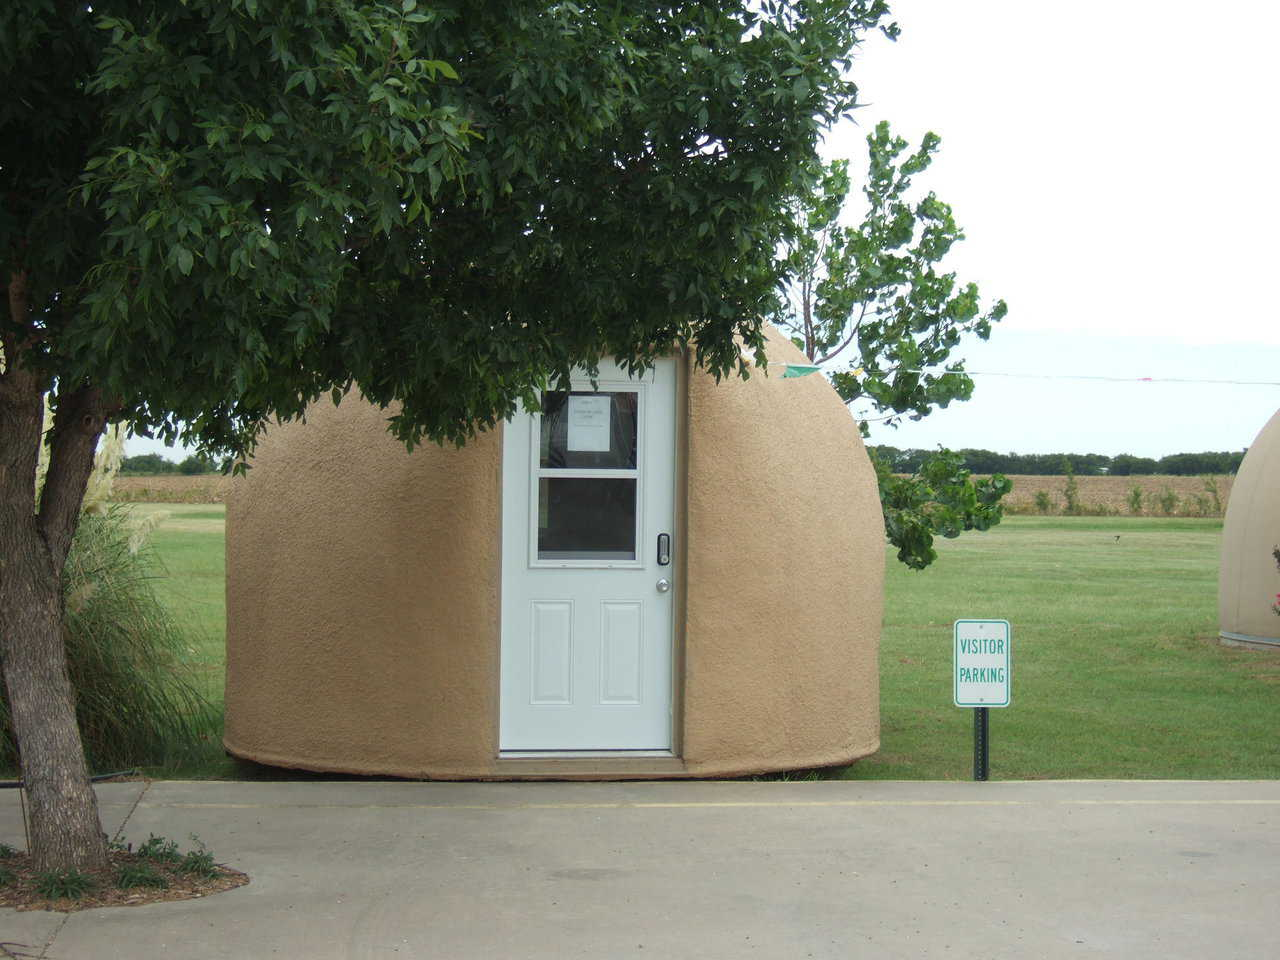 Various lengths – Grow Cabins are 12' wide and up to 25' long. Cabin can be solid or have a window as shown.